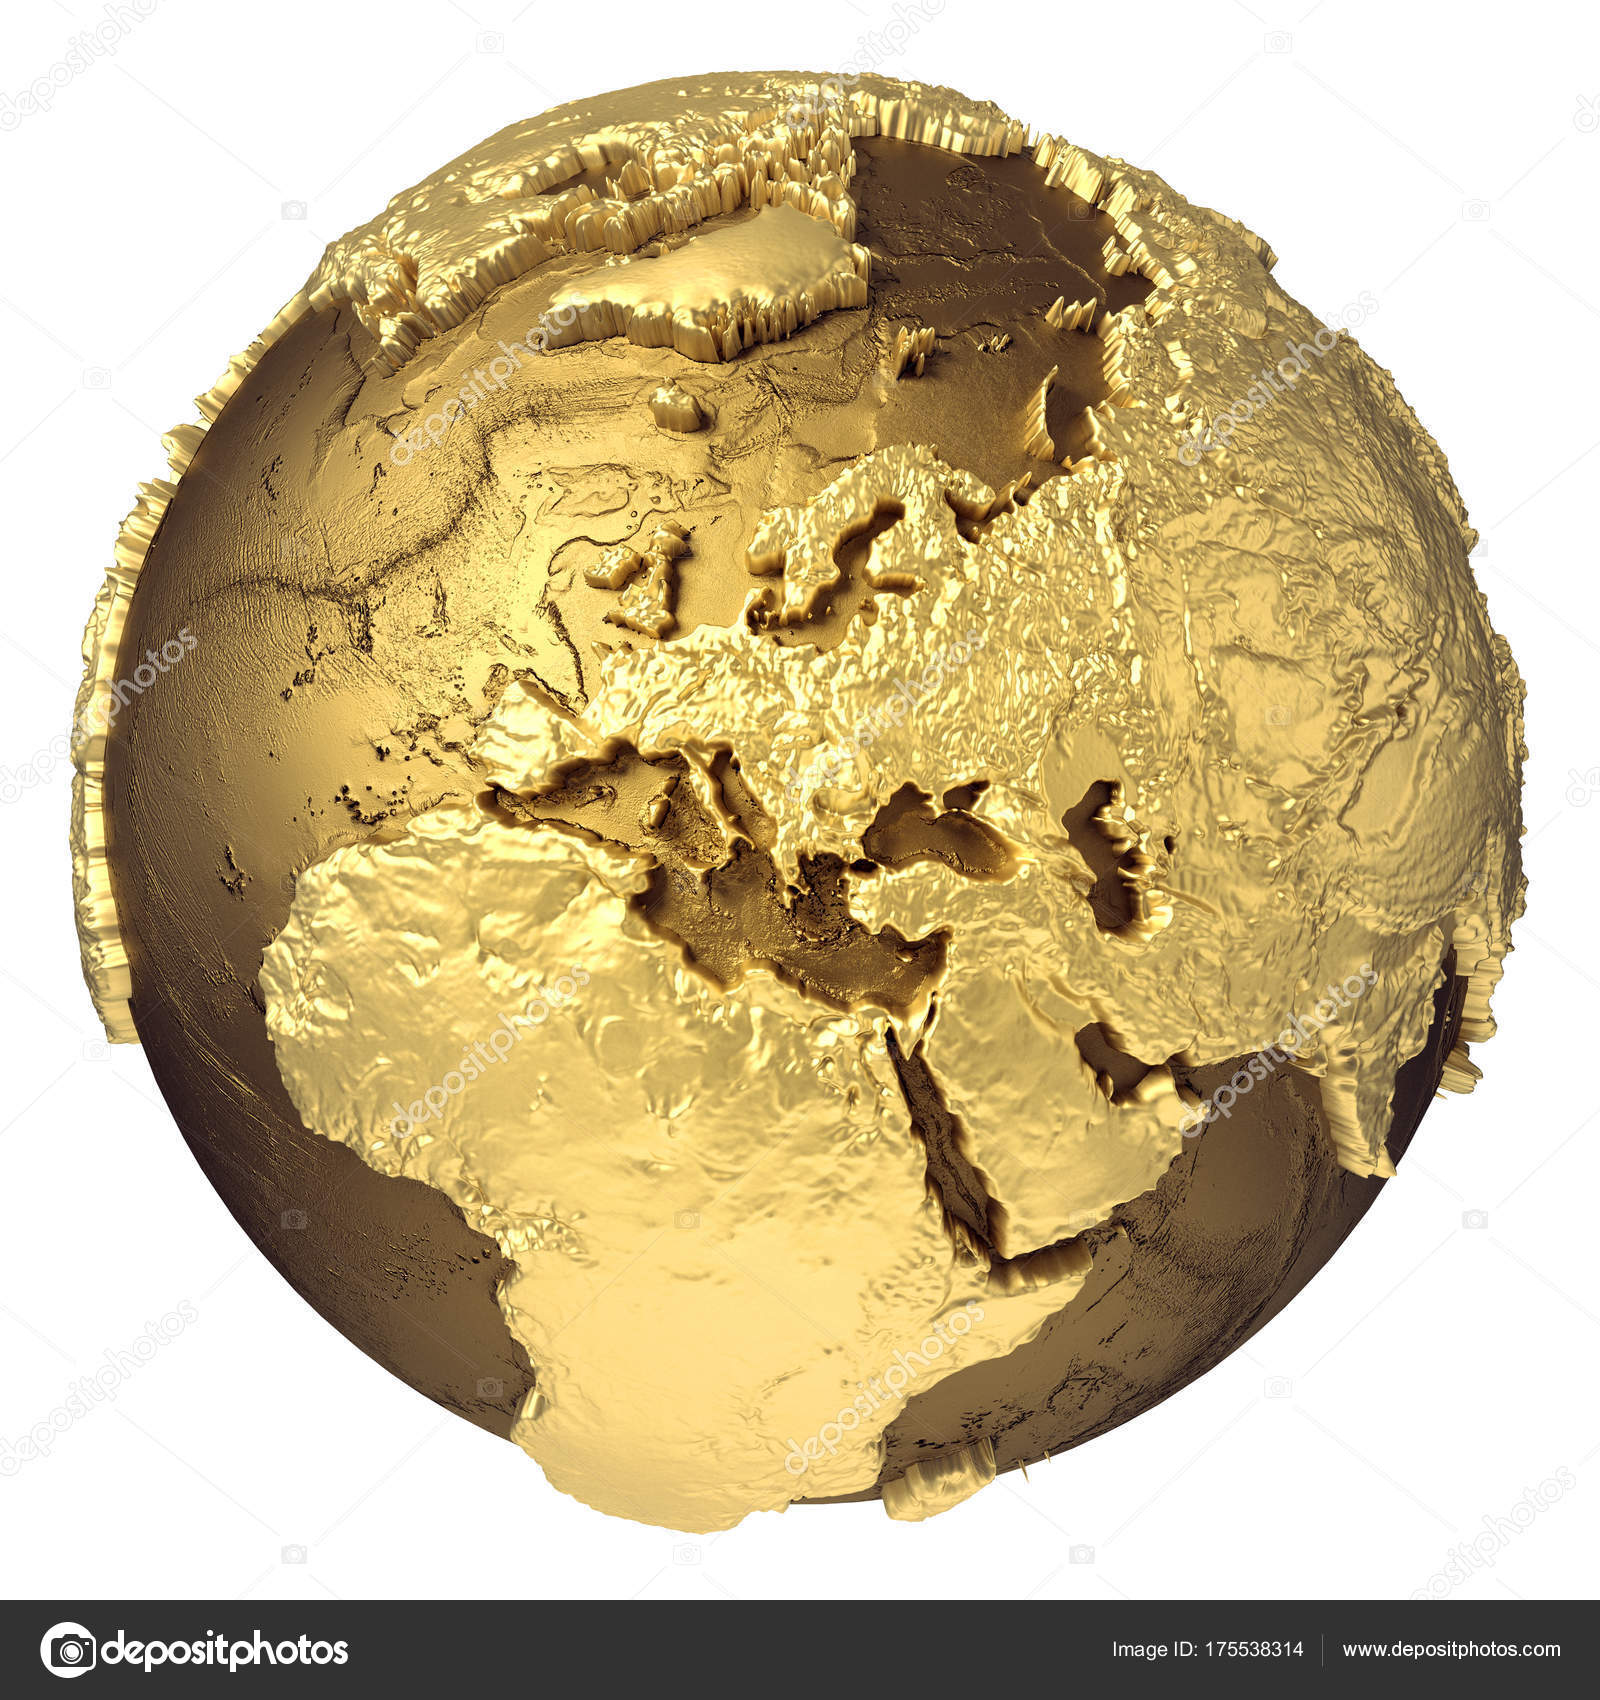 Gold globe europ stock photo threeart 175538314 golden globe model without water europe 3d rendering isolated on white background elements of this image furnished by nas photo by threeart publicscrutiny Choice Image